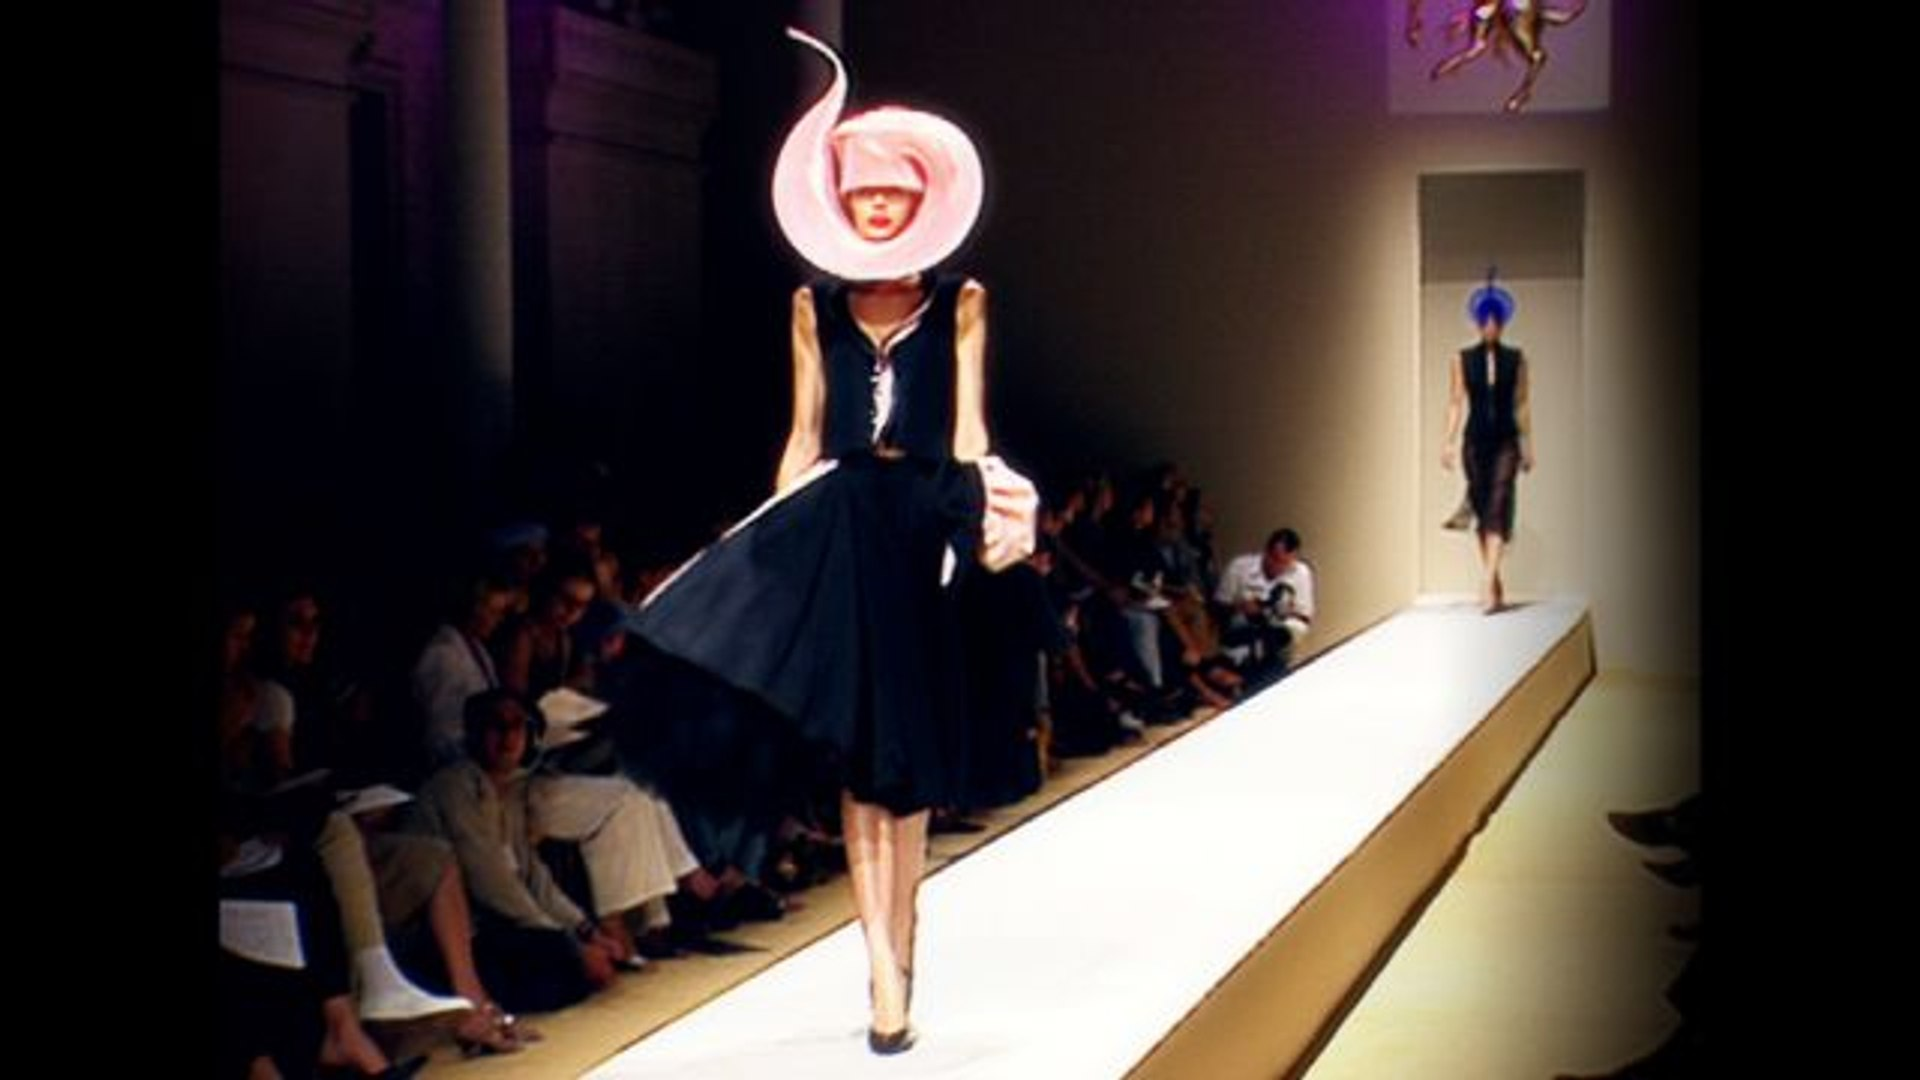 Throwback Thursdays with Tim Blanks - Philip Treacy: The Mad Hatter